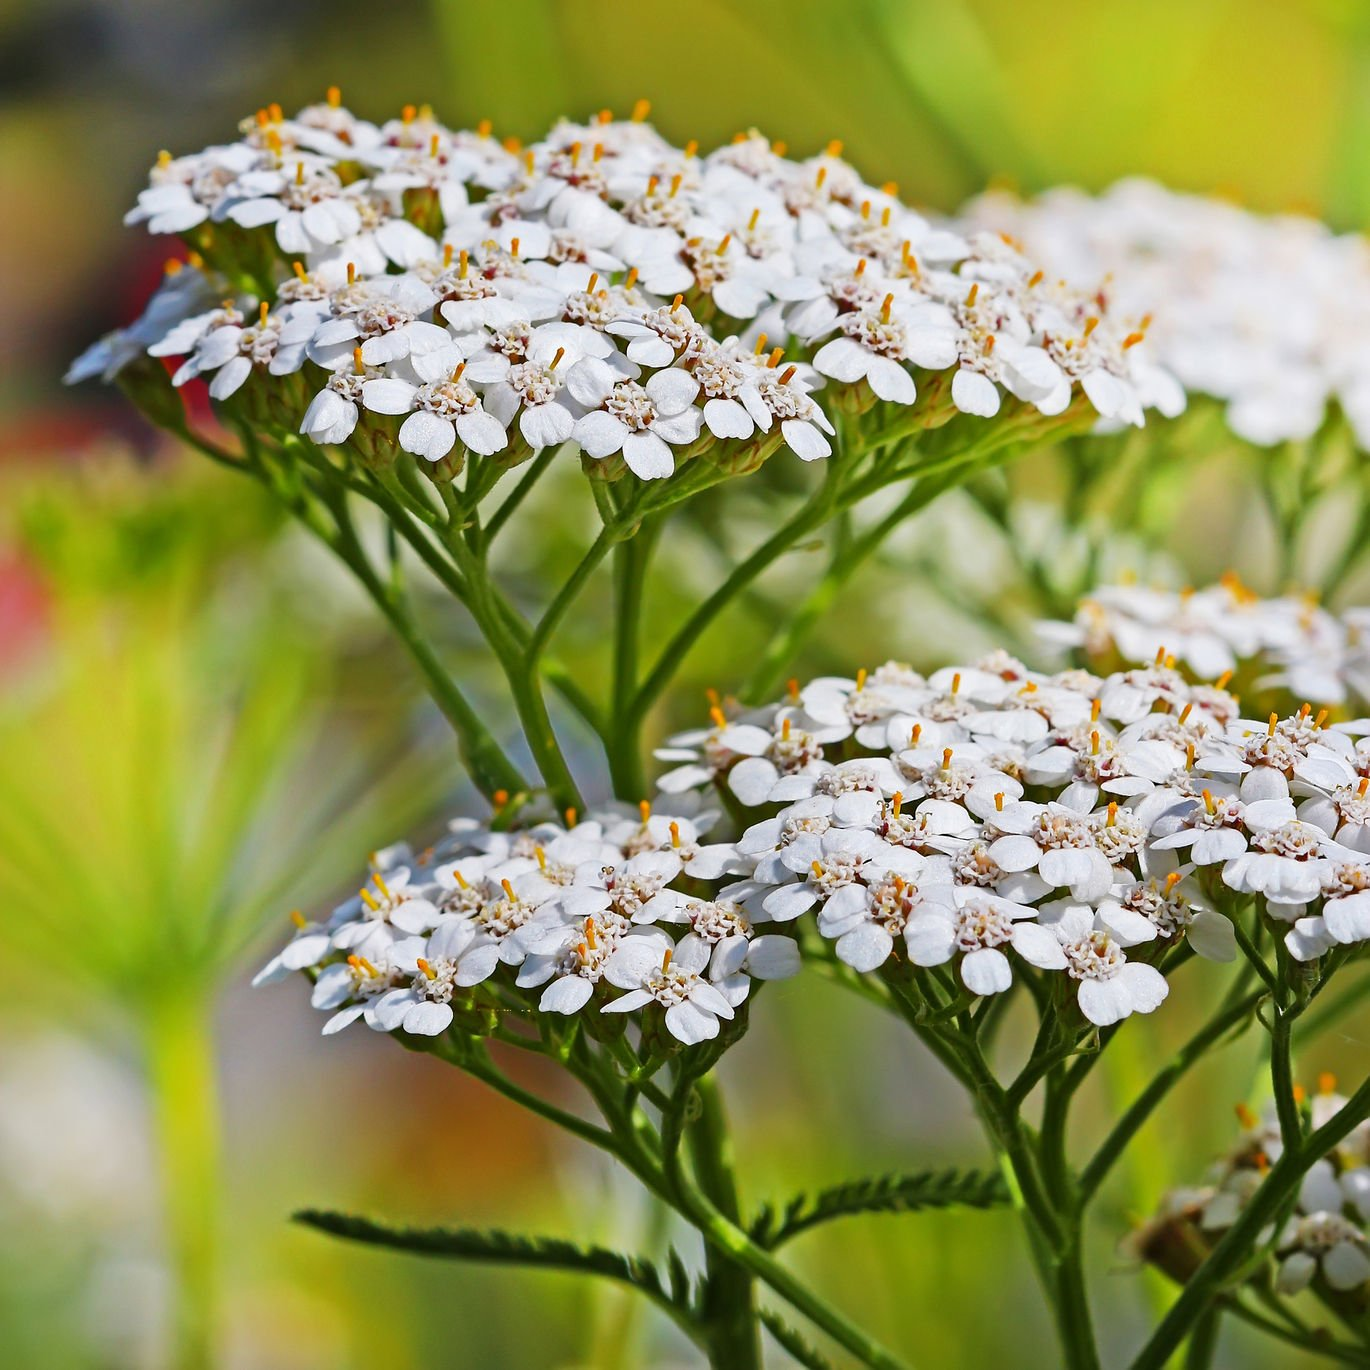 White Yarrow (Achillea millefolium) Seed Balls, Fall or Spring Planting, Bulk Seed Bombs for Guerrilla Gardening (50) by Seed-Balls.com